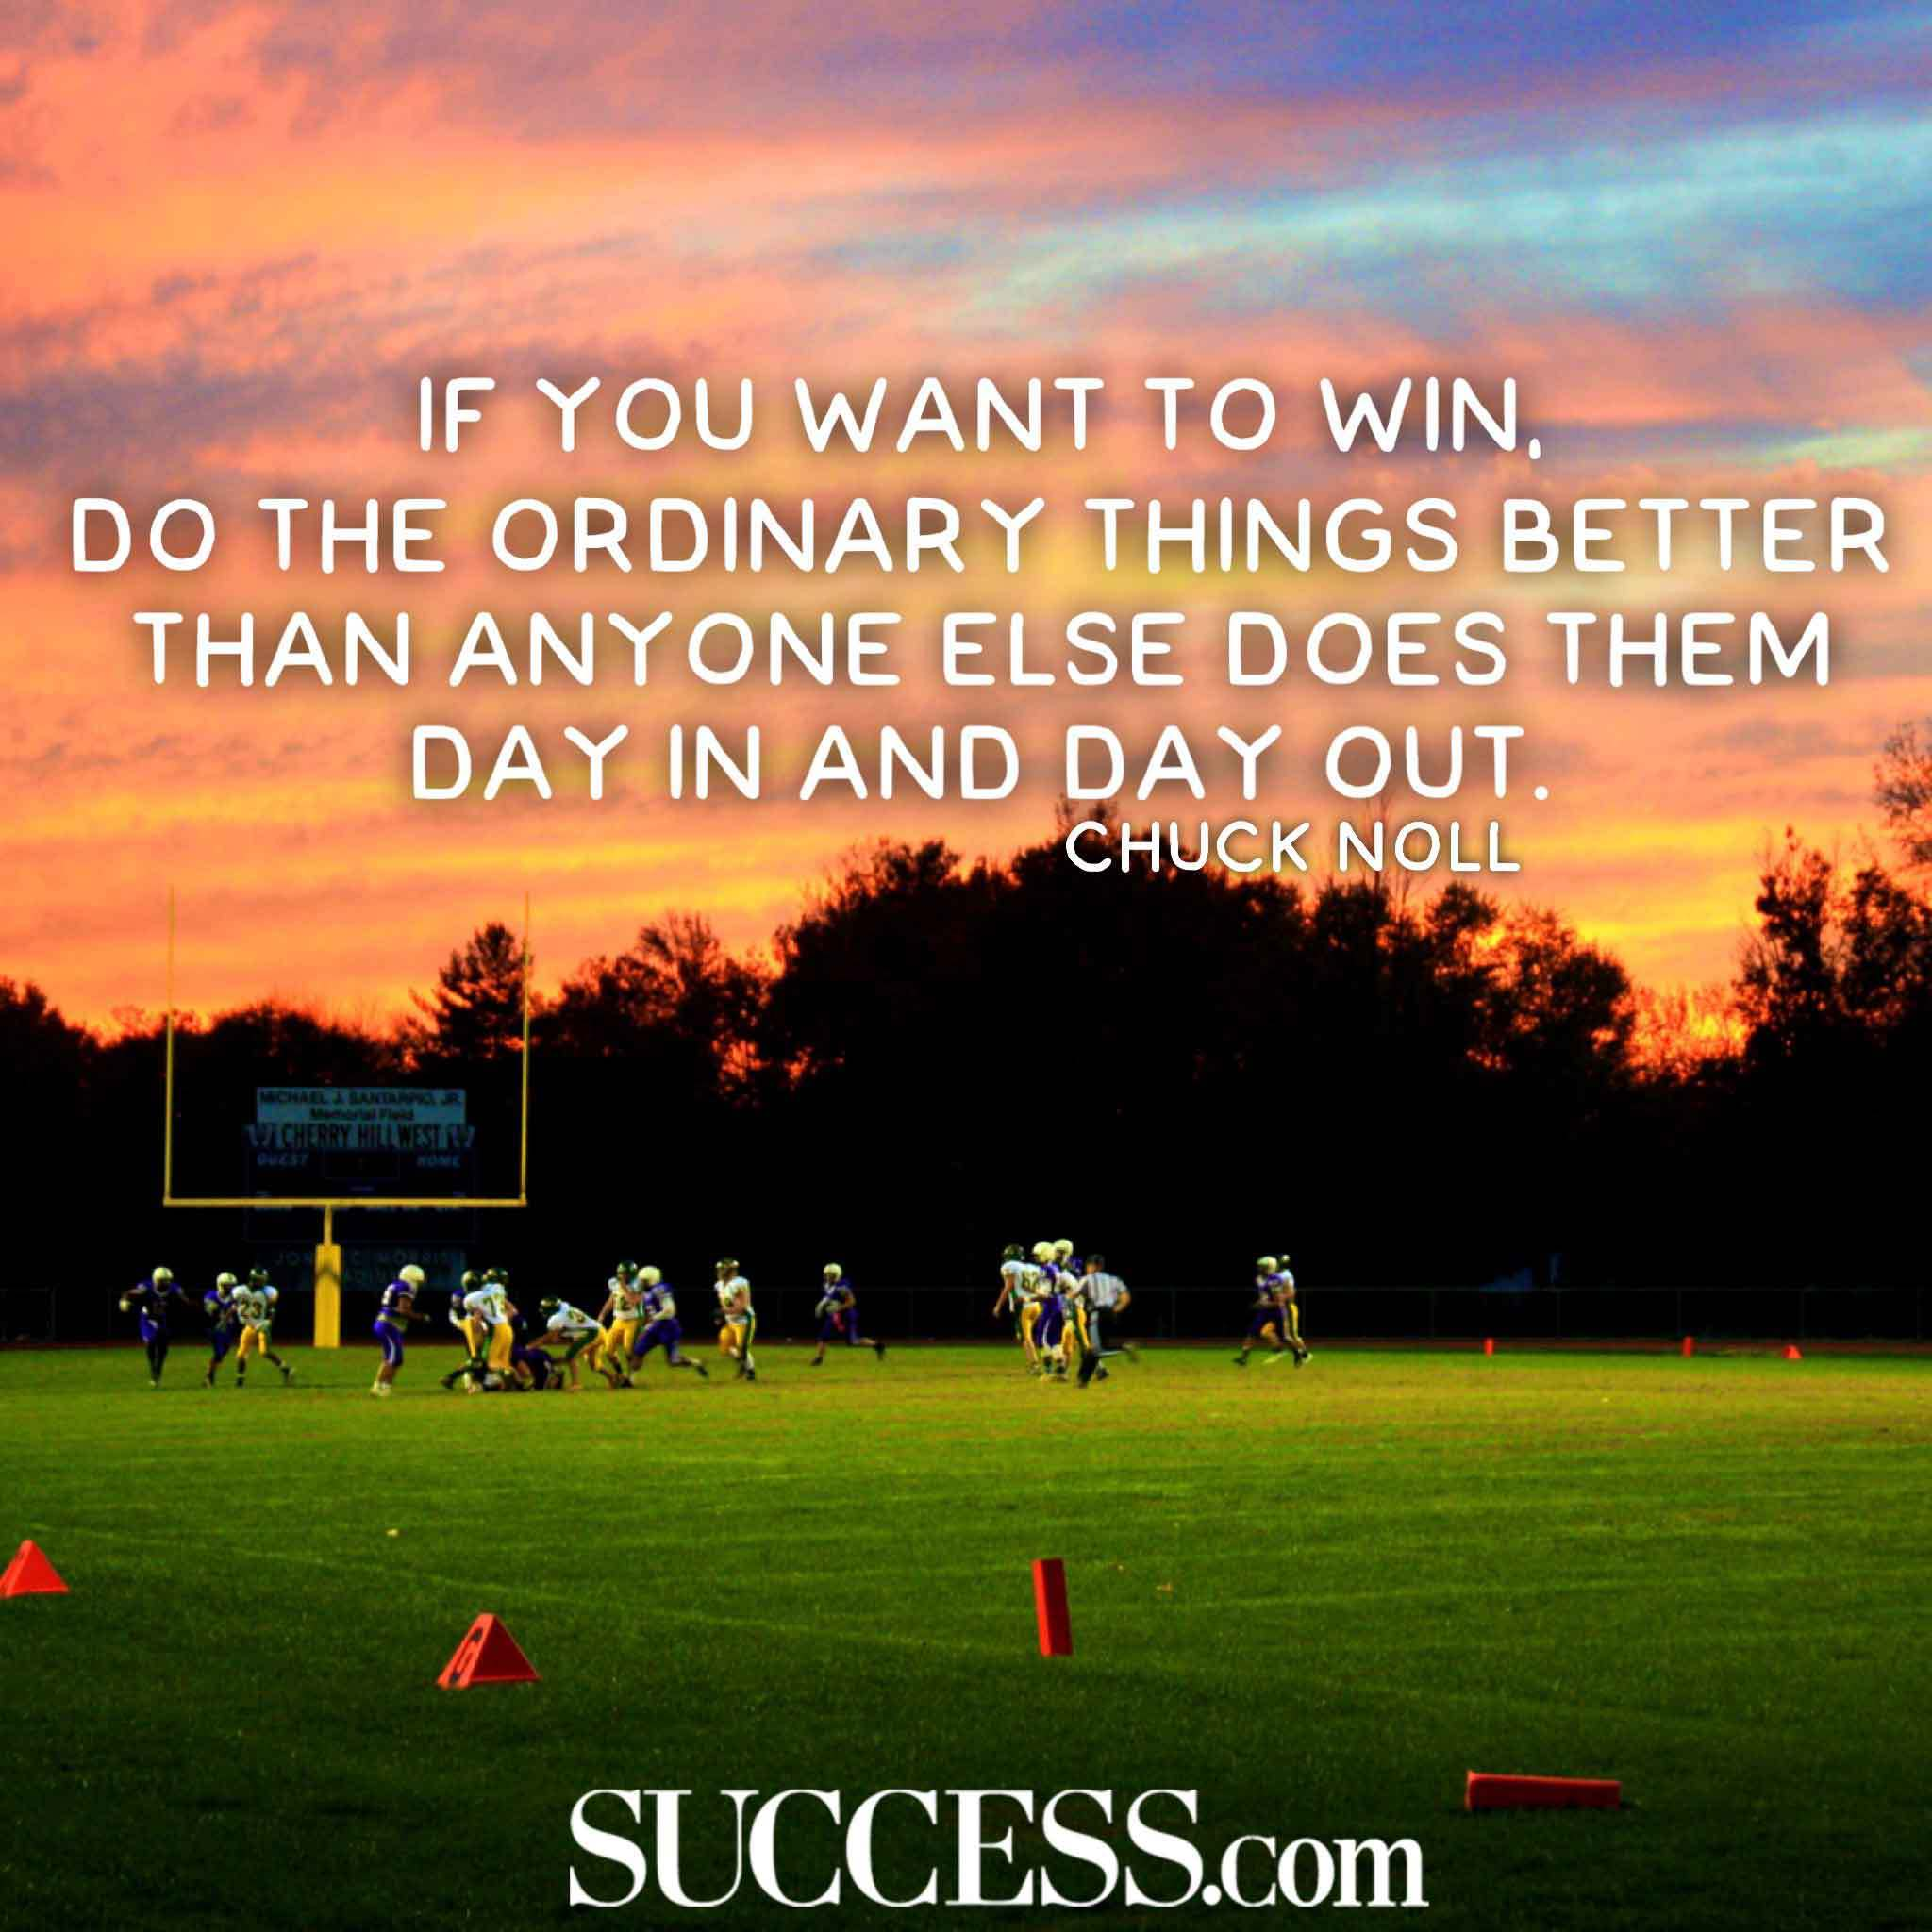 If You Want To Win Football Quotes